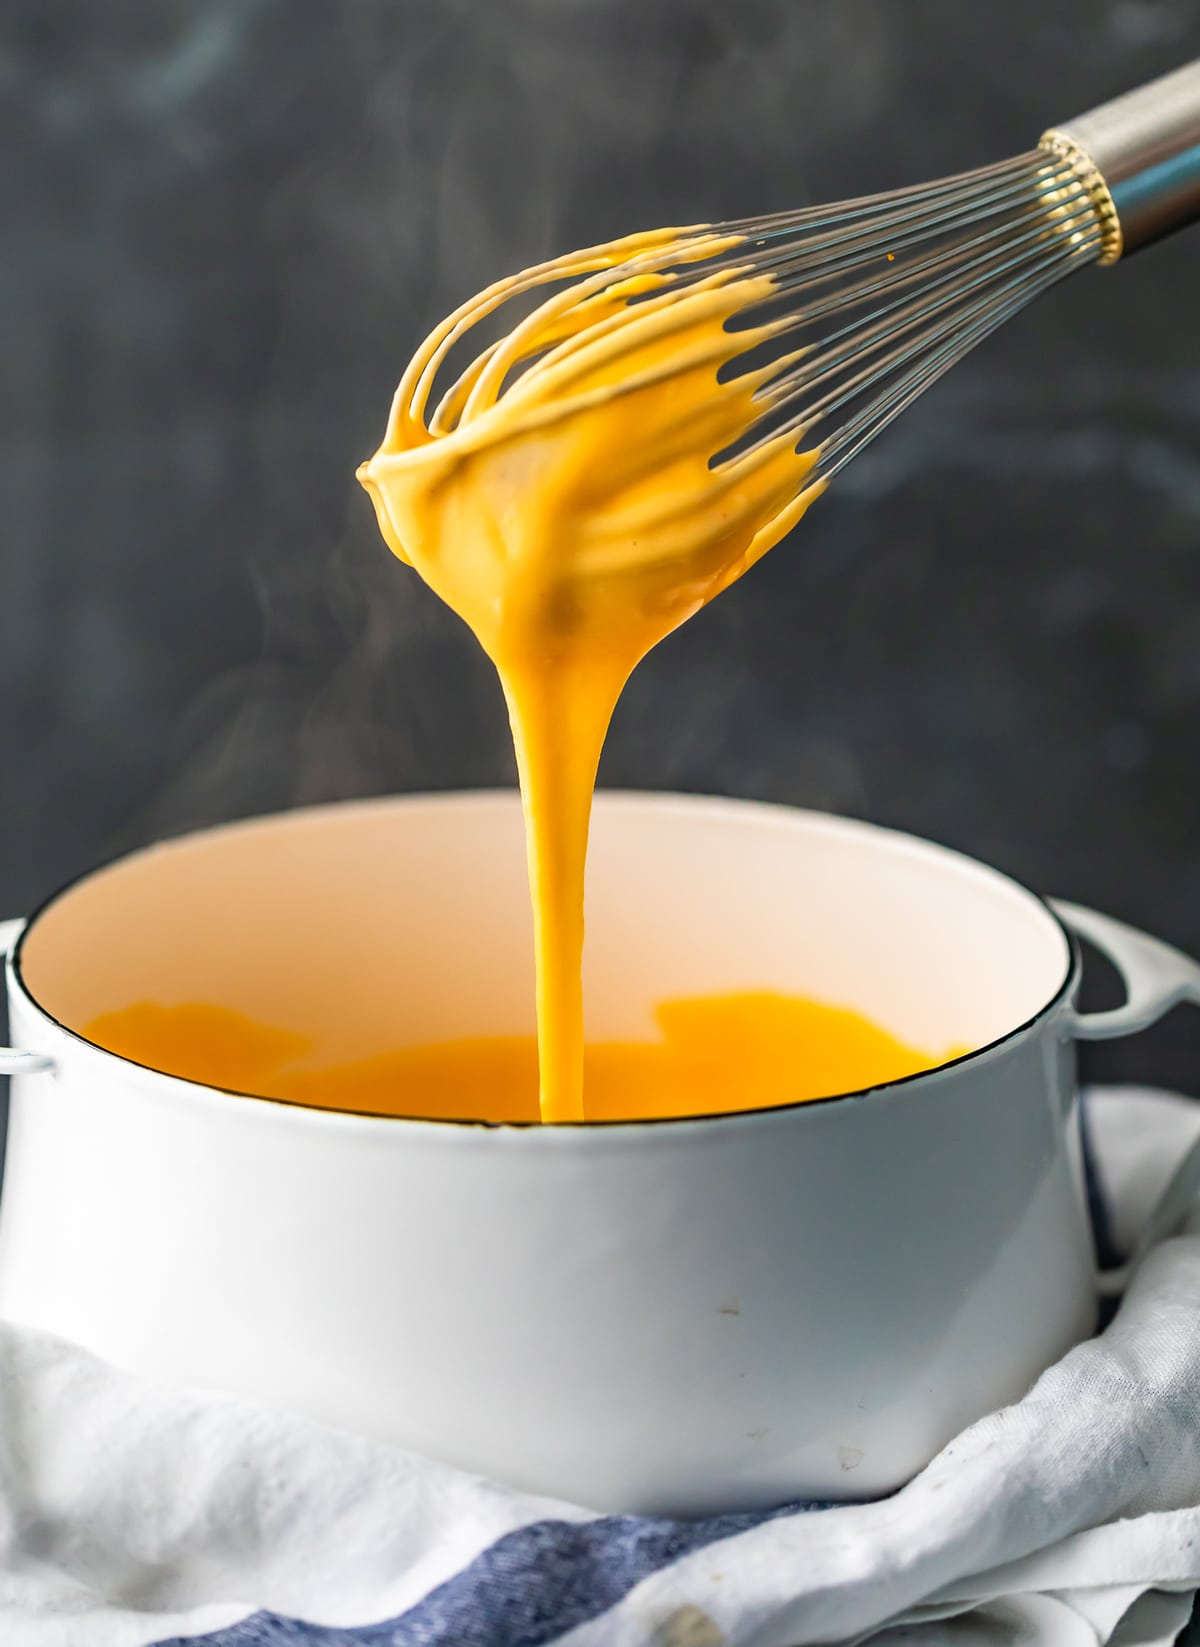 a whisk covered in cheese sauce